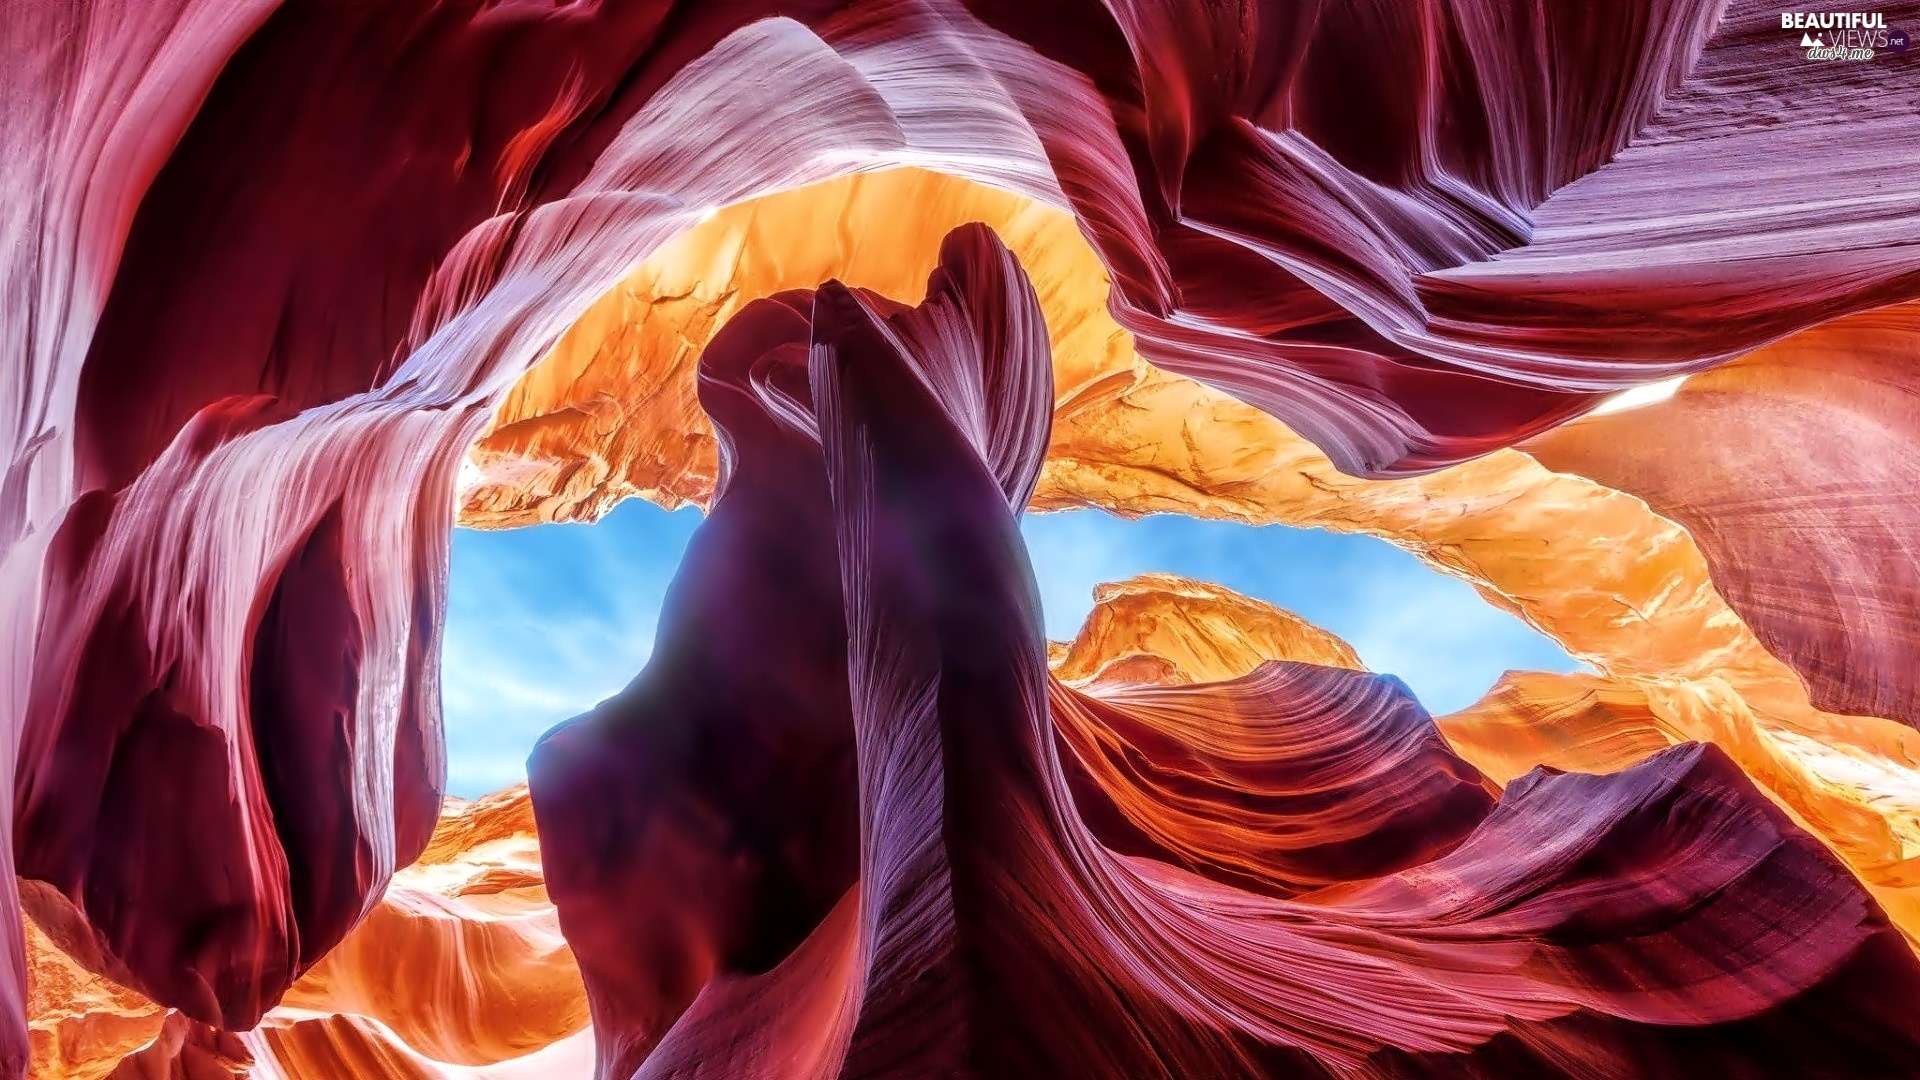 The United States, Antelope Canyon, Interstitial, Arizona